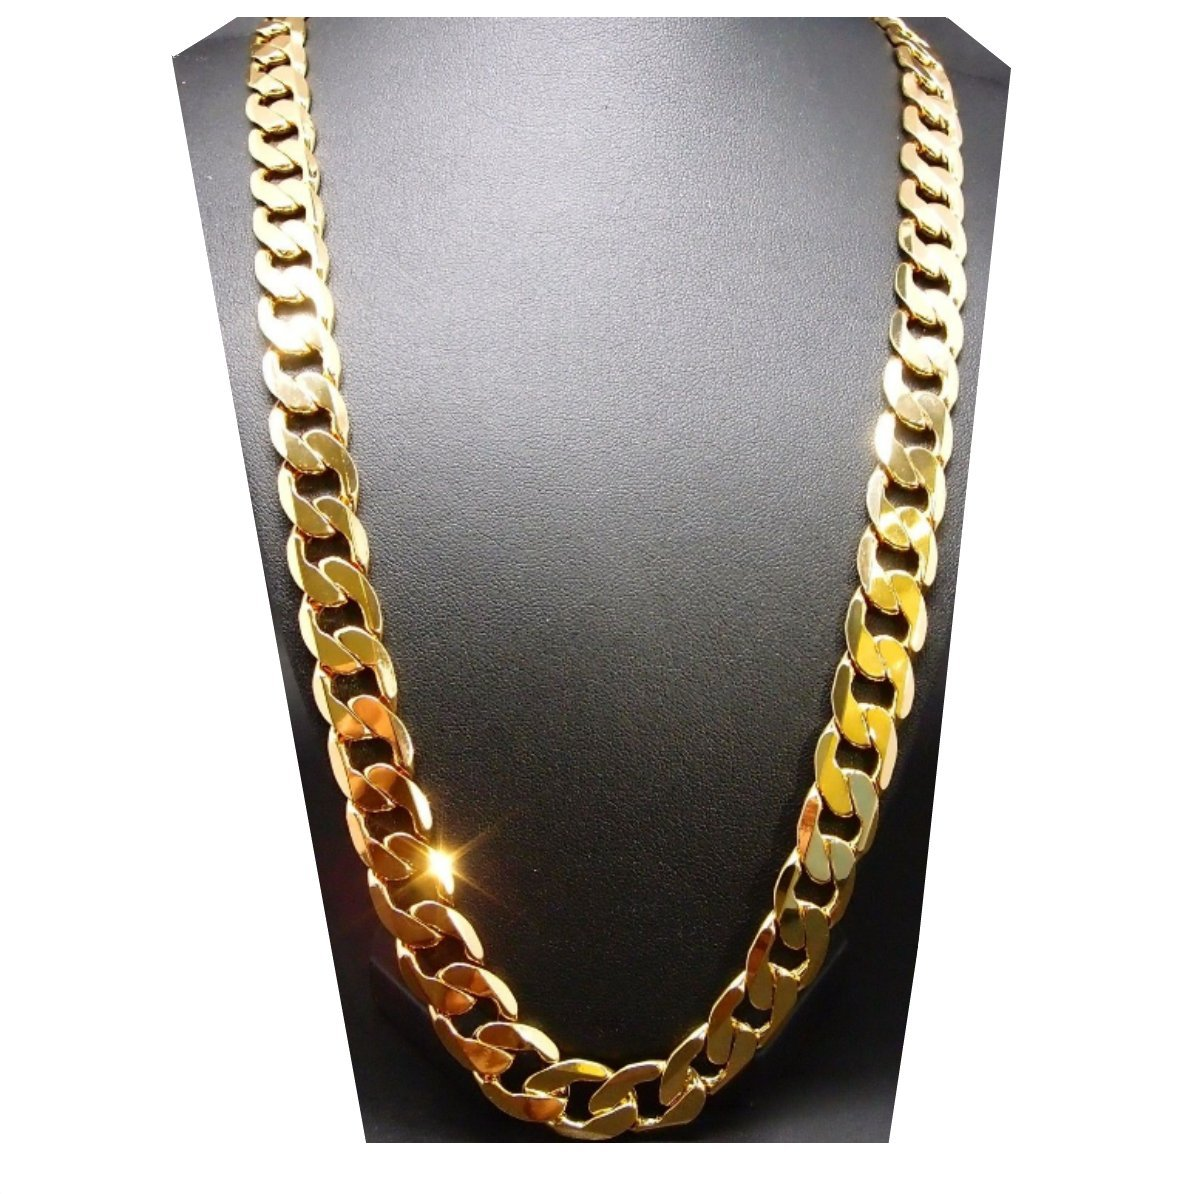 Gold chain necklace 9MM 24K Diamond cut Smooth Cuban Link with a. USA made (24)